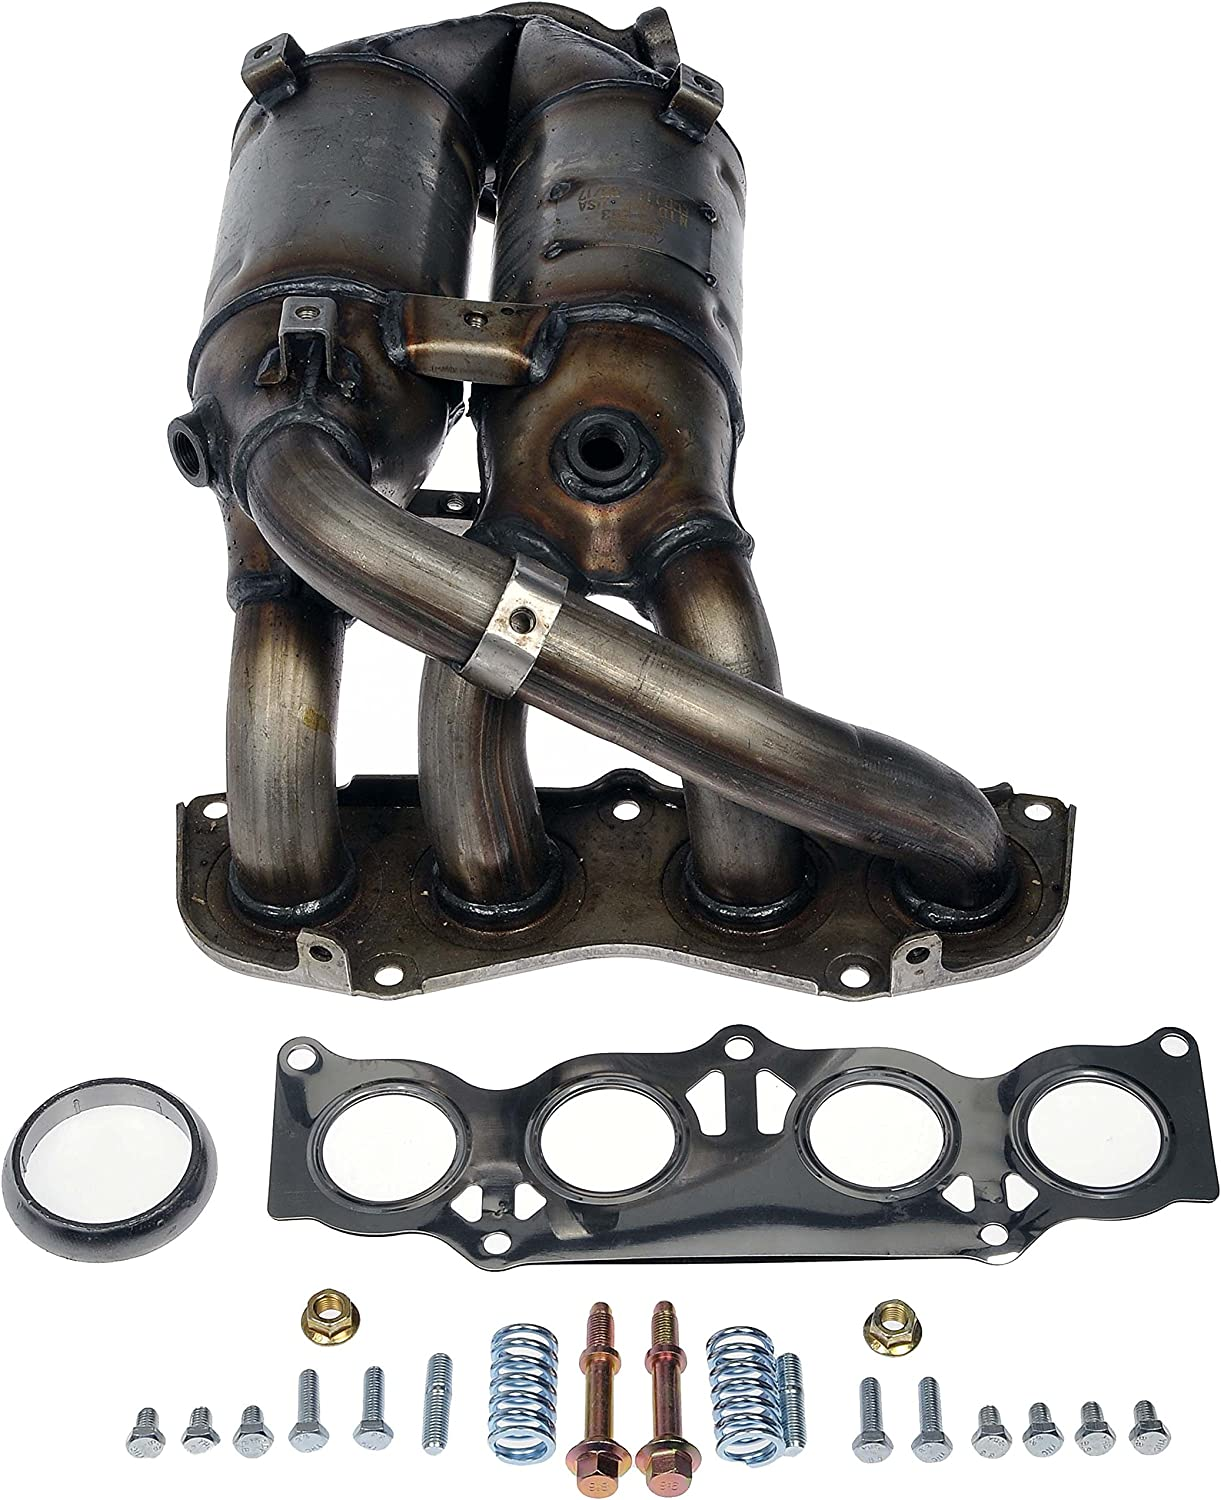 Sales of SALE items from new works Dorman 674-593 Catalytic Converter with Manif Integrated Spasm price Exhaust